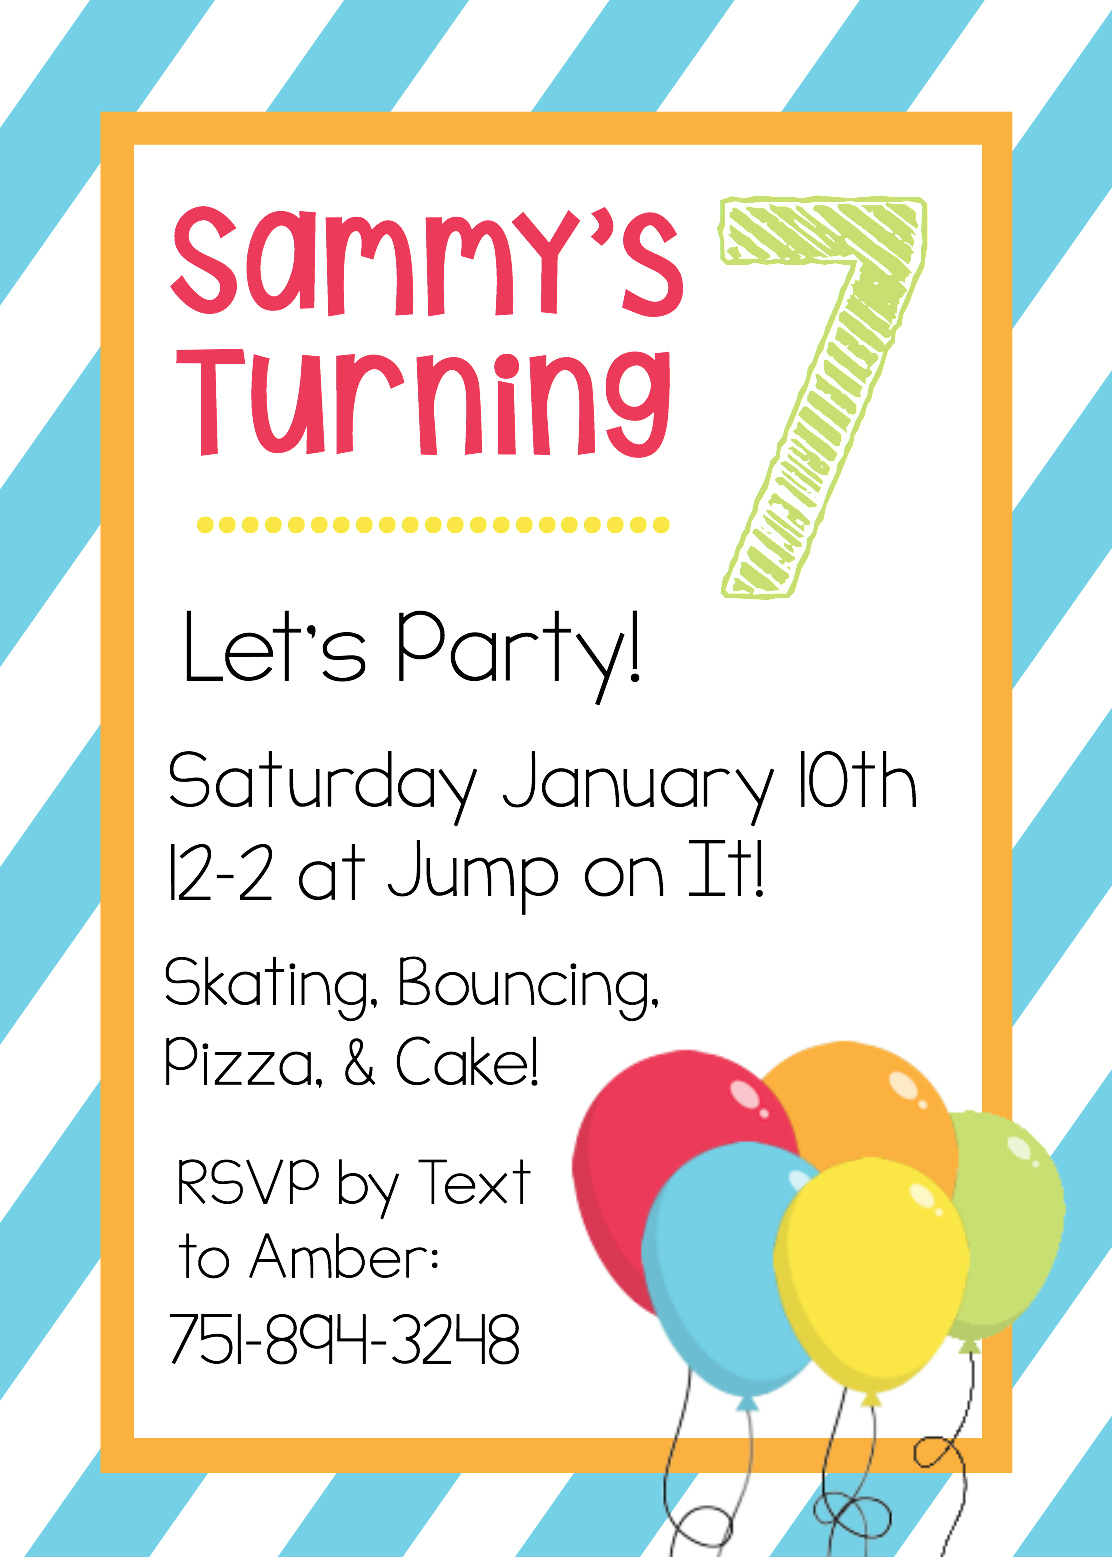 Free birthday party invitation templates for kids yeniscale free printable birthday invitation templates stopboris Images